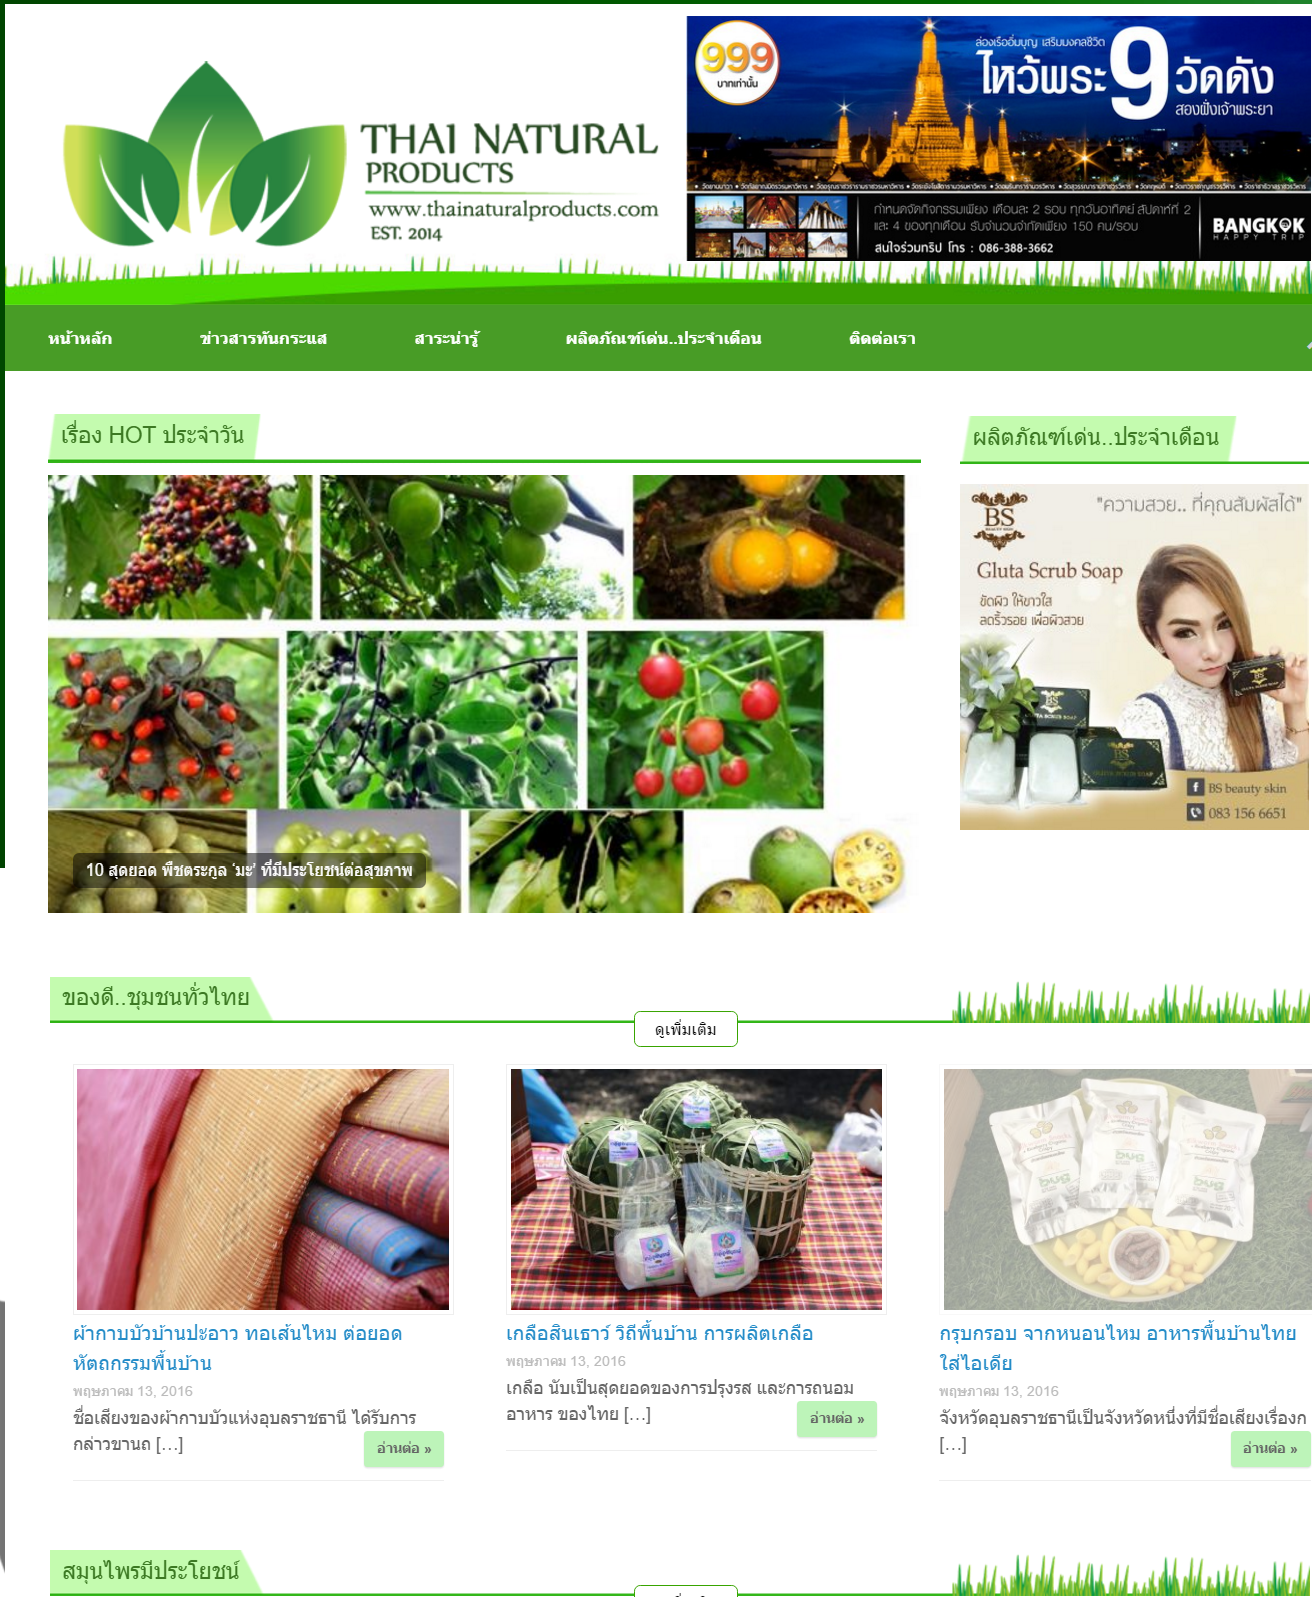 Thai Natural Products